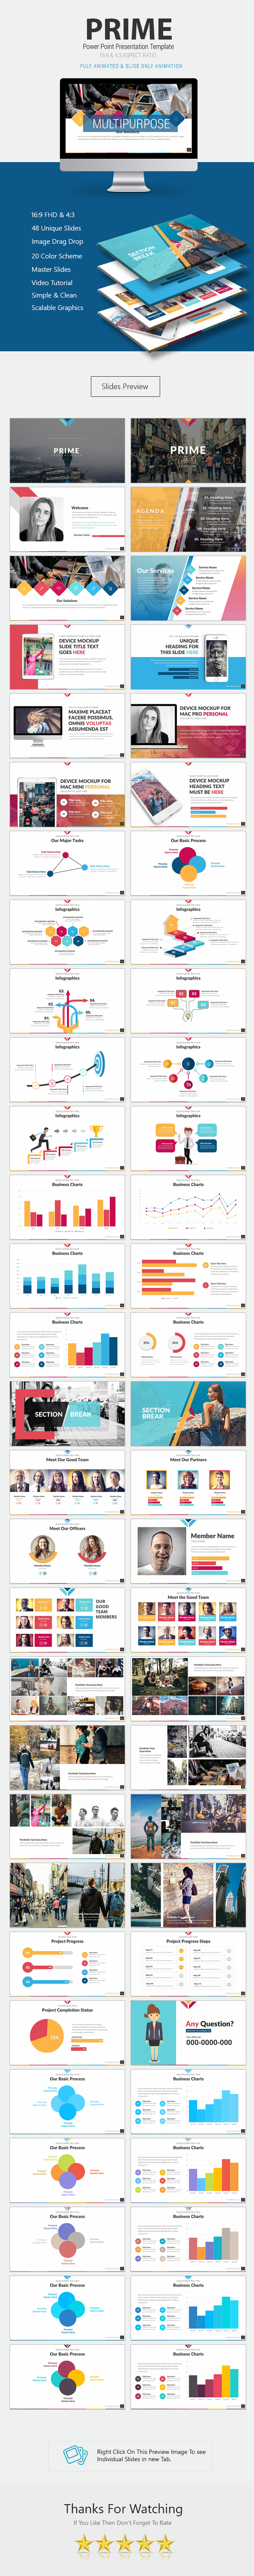 Prime Power Point Presentation - Business PowerPoint Templates